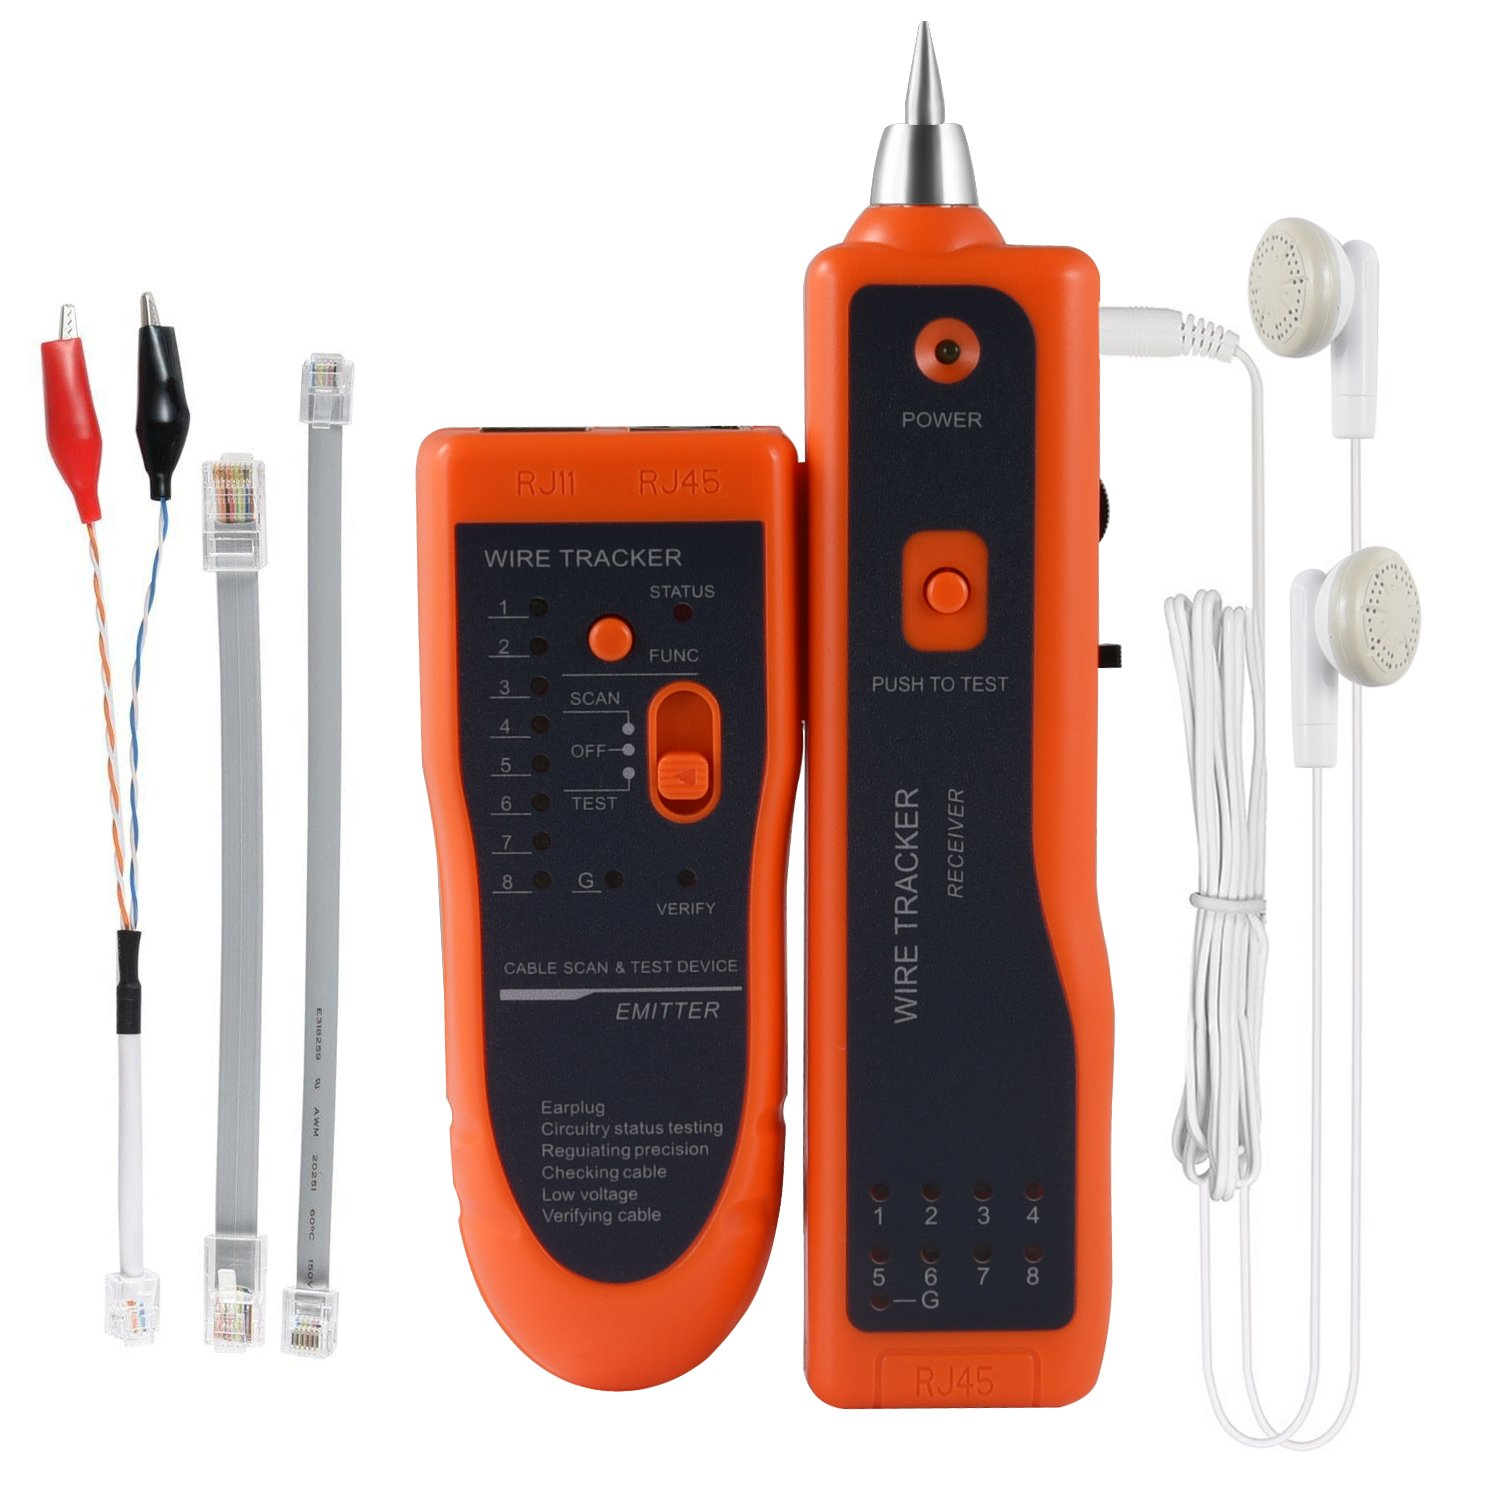 Ethernet Network Cable Tester Kit RJ11 RJ45 CAT5/5e CAT6 LAN Wire Tracker Portable Line Finder for Miss Wiring Disorder Cable Open and Short Circuit Testing,Earphone Included, Toolkit(Orange)